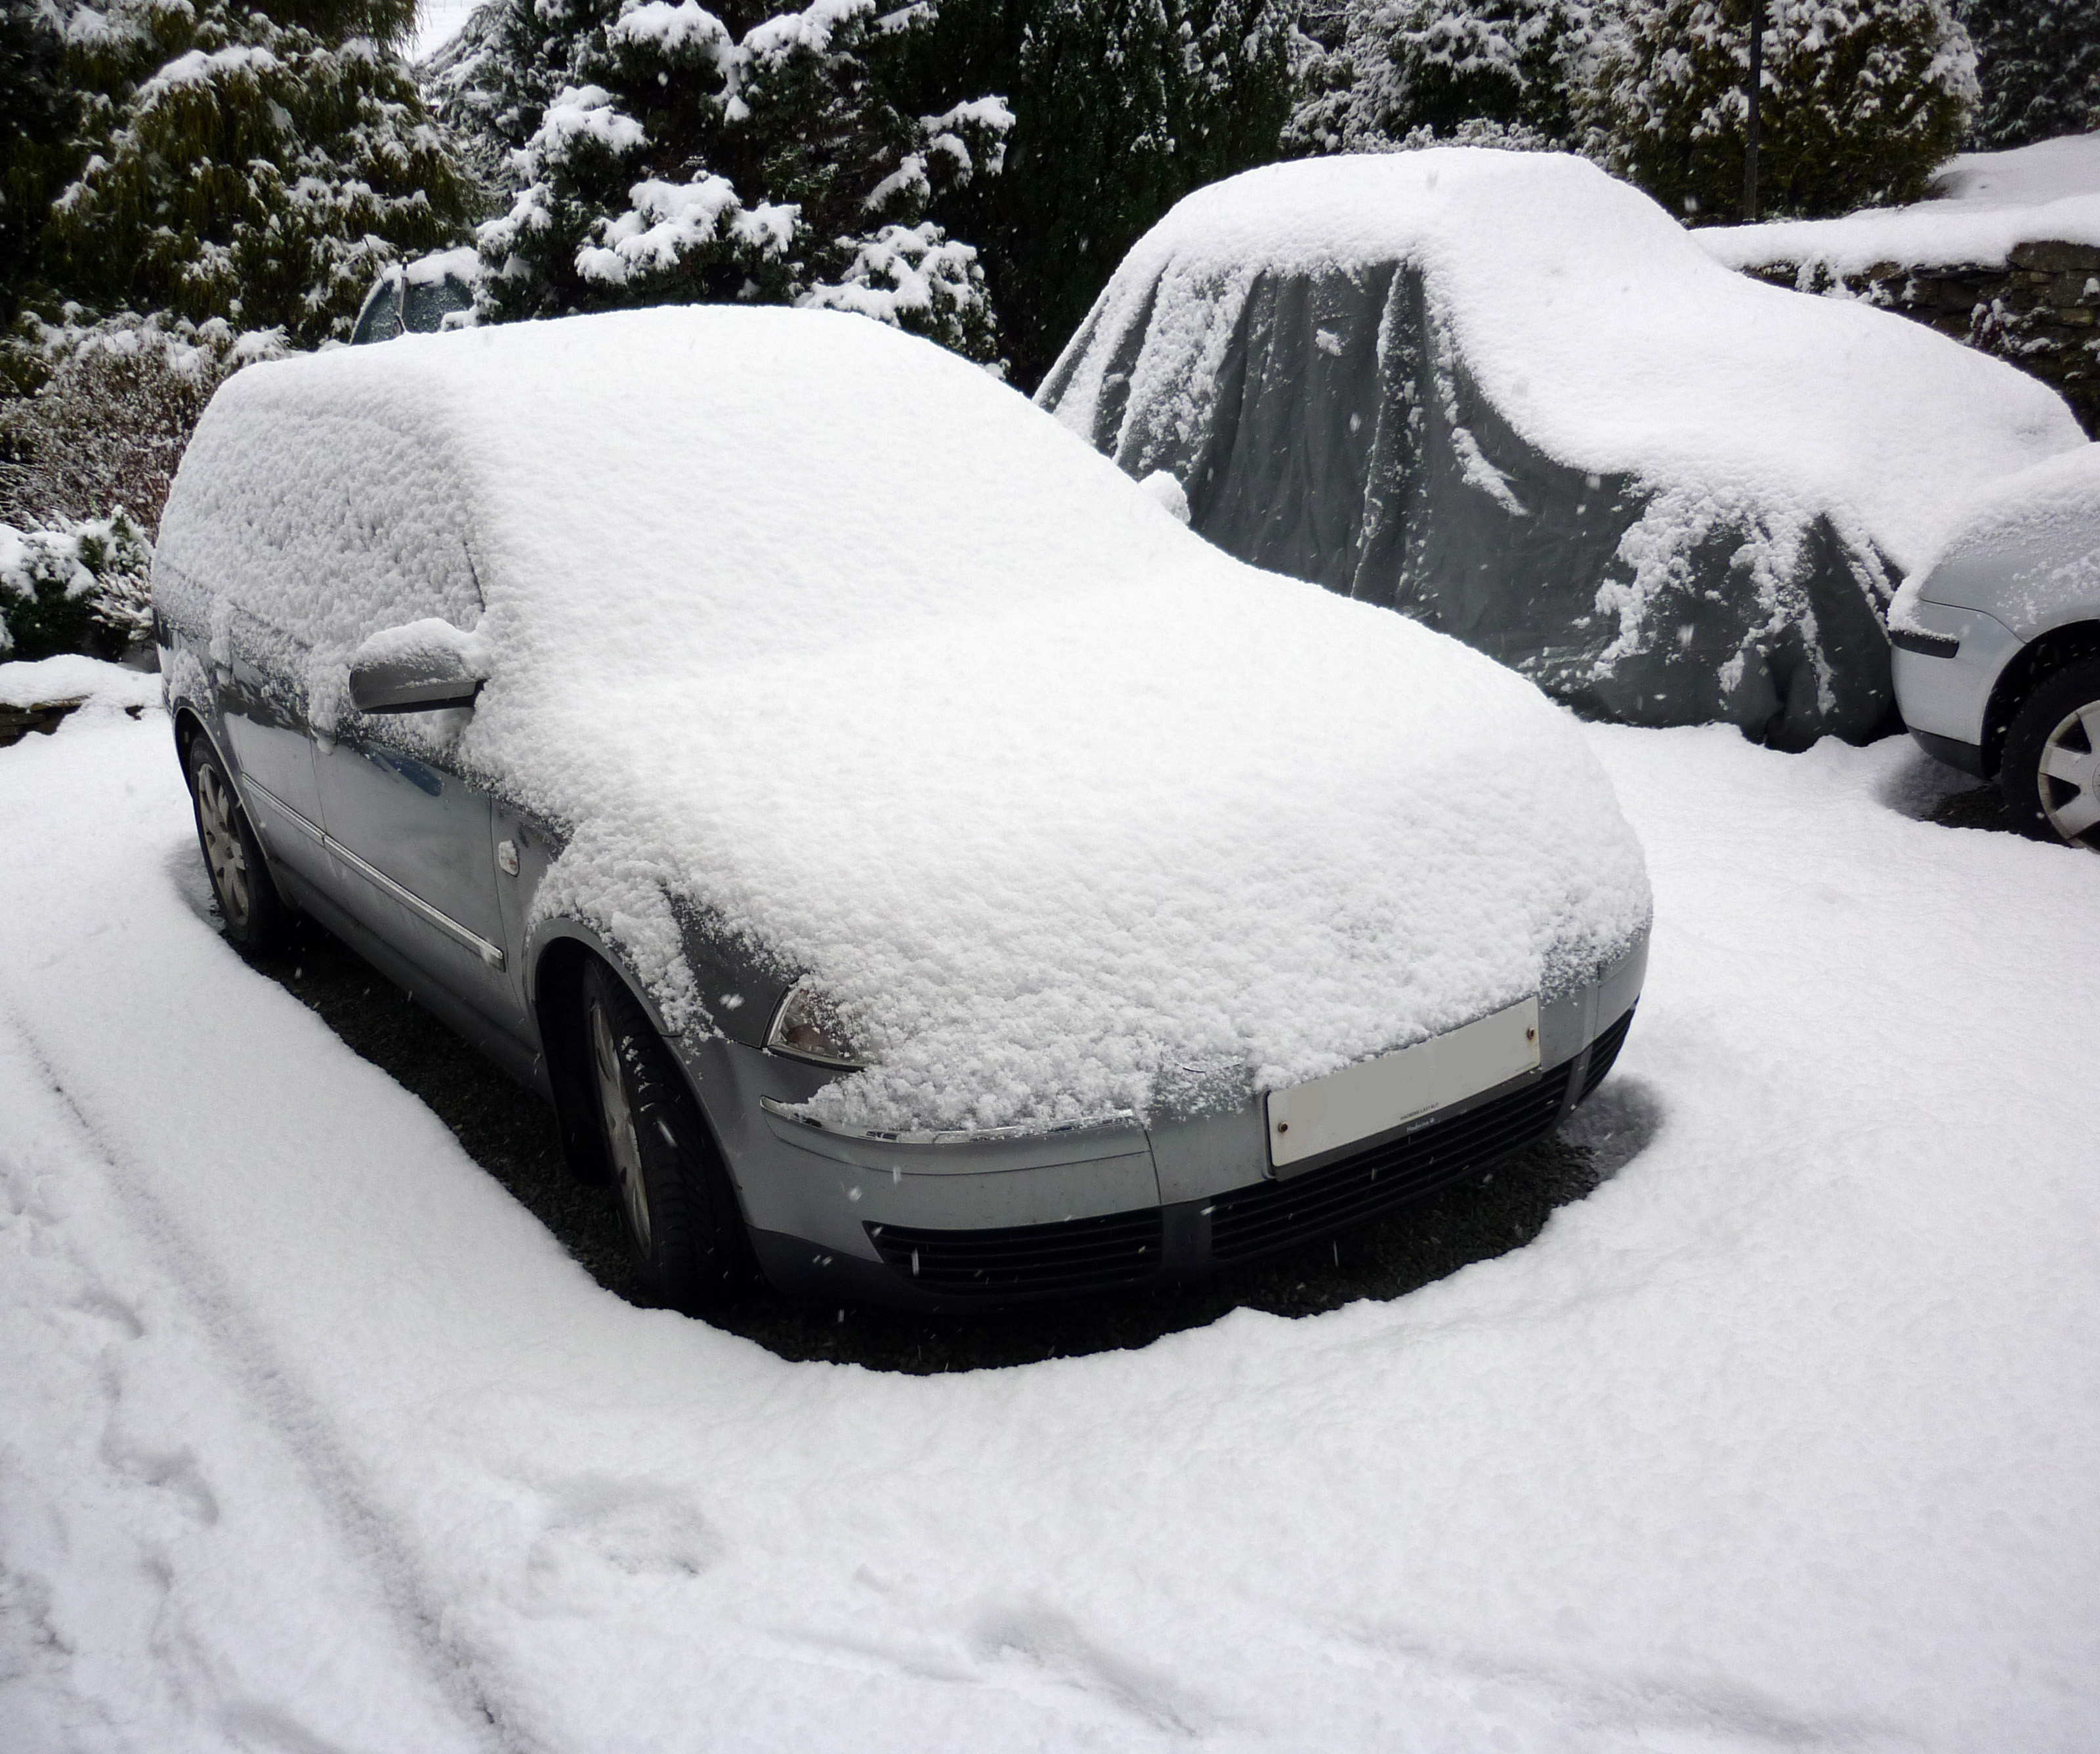 snow covered car-4195 | Stockarch Free Stock Photos